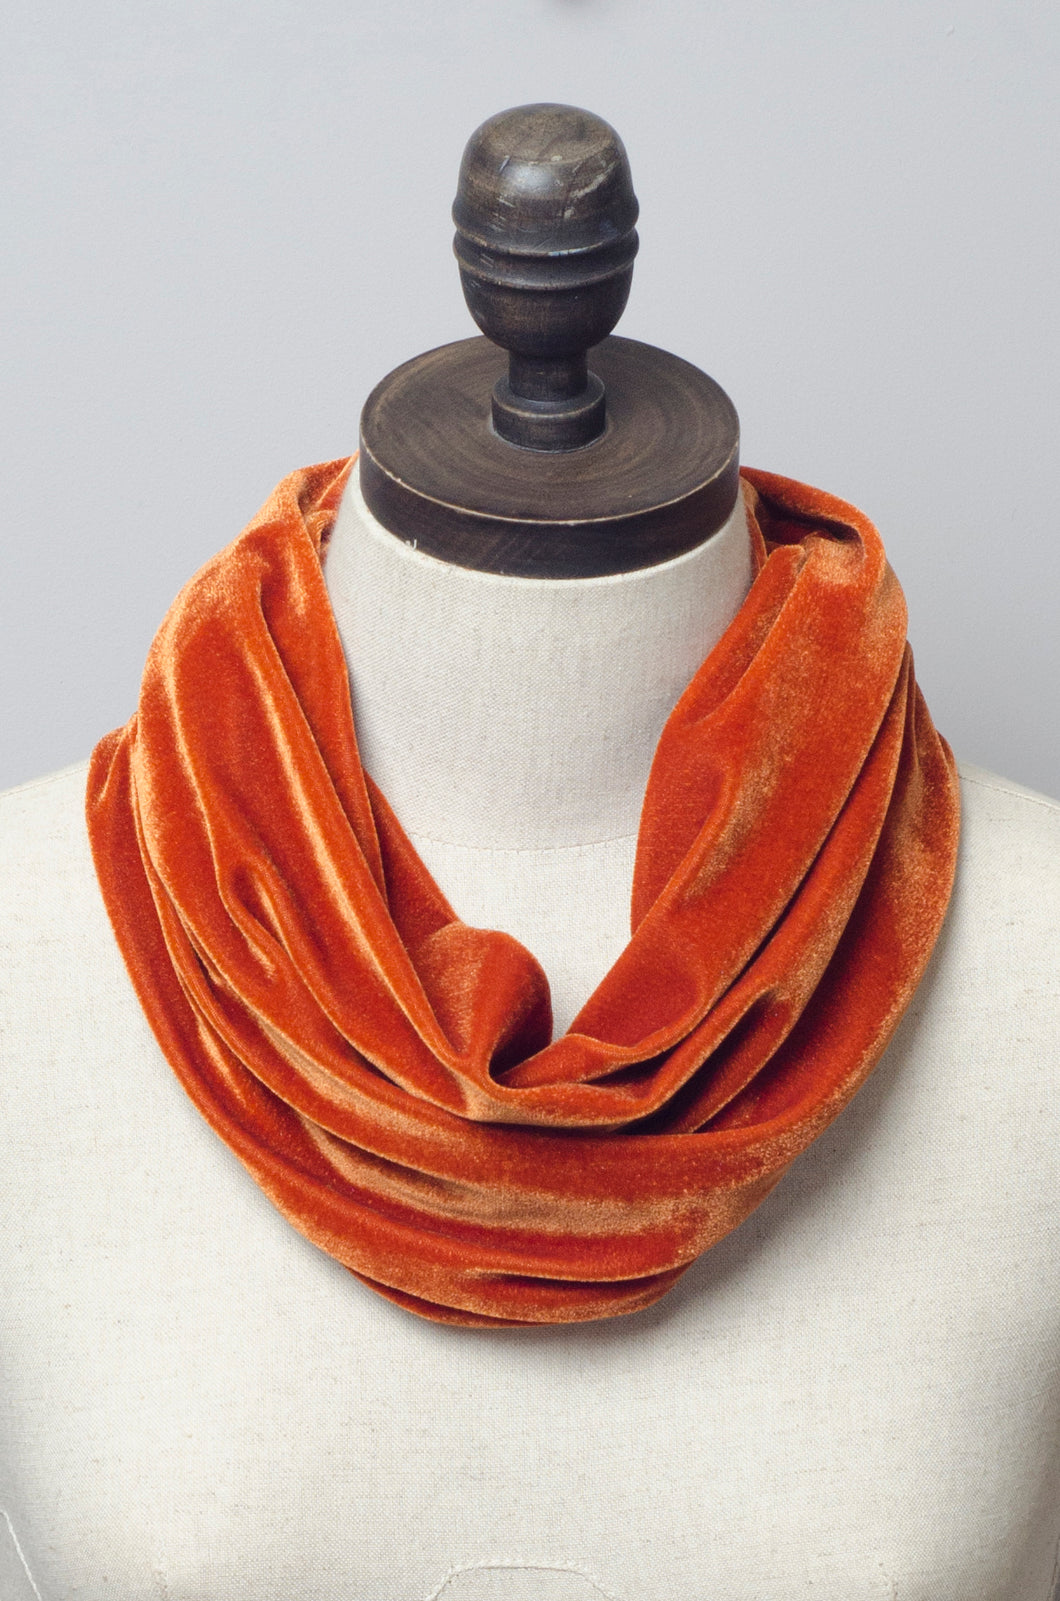 Velvet Cowl in Burnt Orange - Accessories - Megan Crook